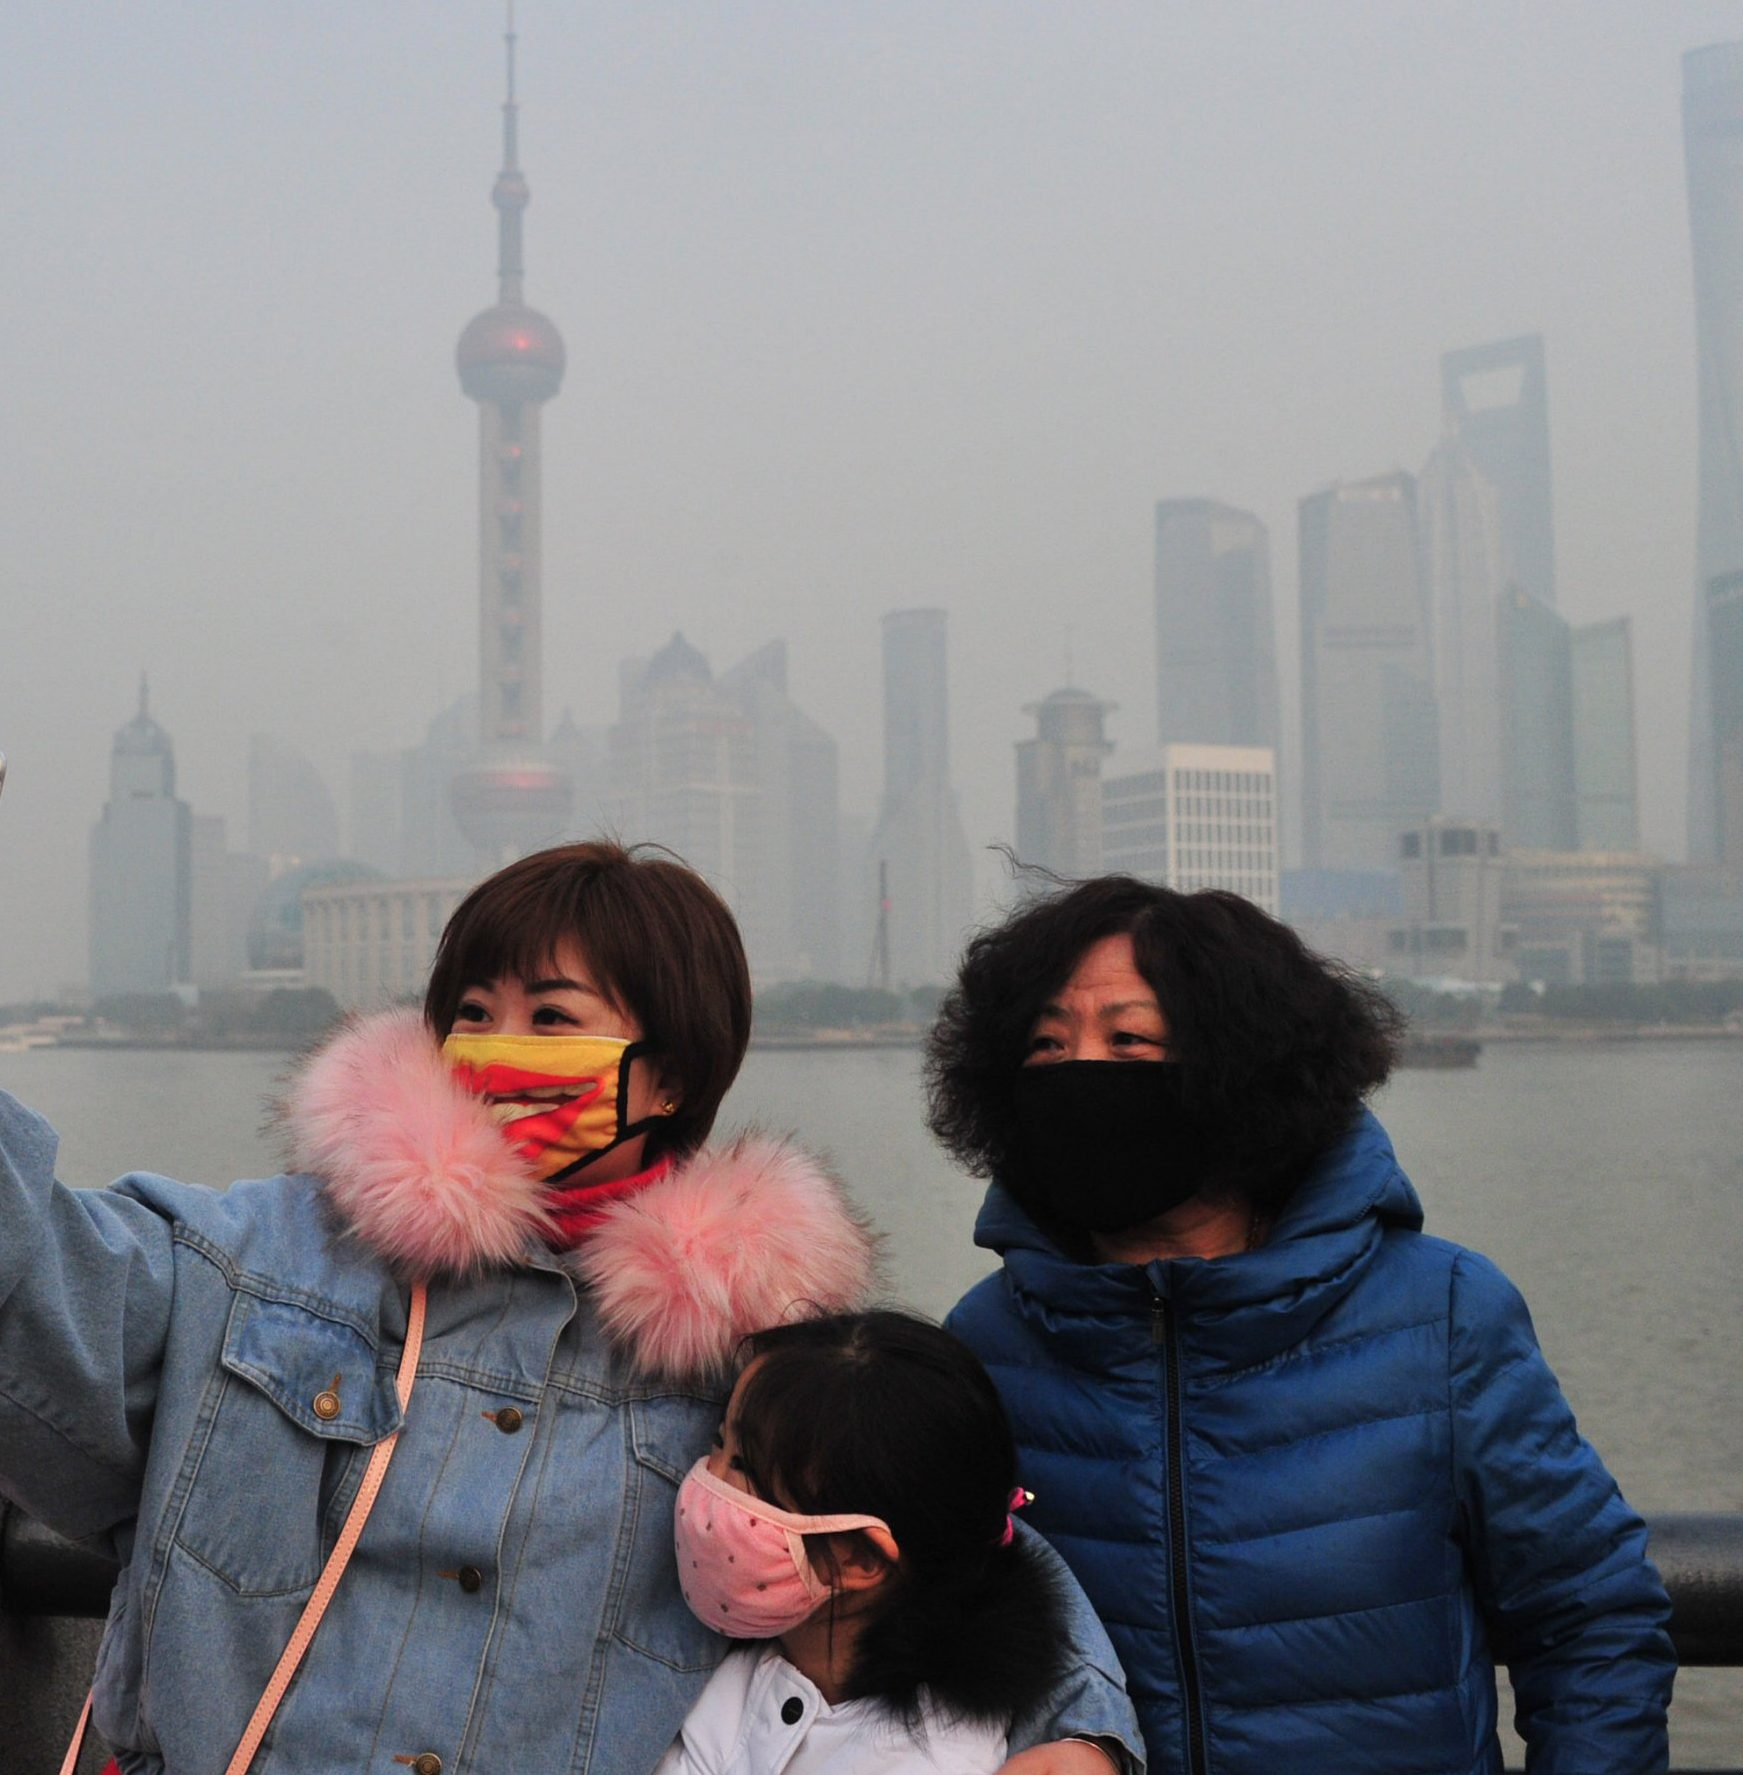 SHANGHAI, CHINA - JANUARY 30: People visit the Bund which is plagued by heavy smog on January 30, 2018 in Shanghai, China. Shanghai Air Pollution Index (API) reaches 235 at 5 p.m., indicating heavy pollution. (Photo by VCG/VCG via Getty Images)